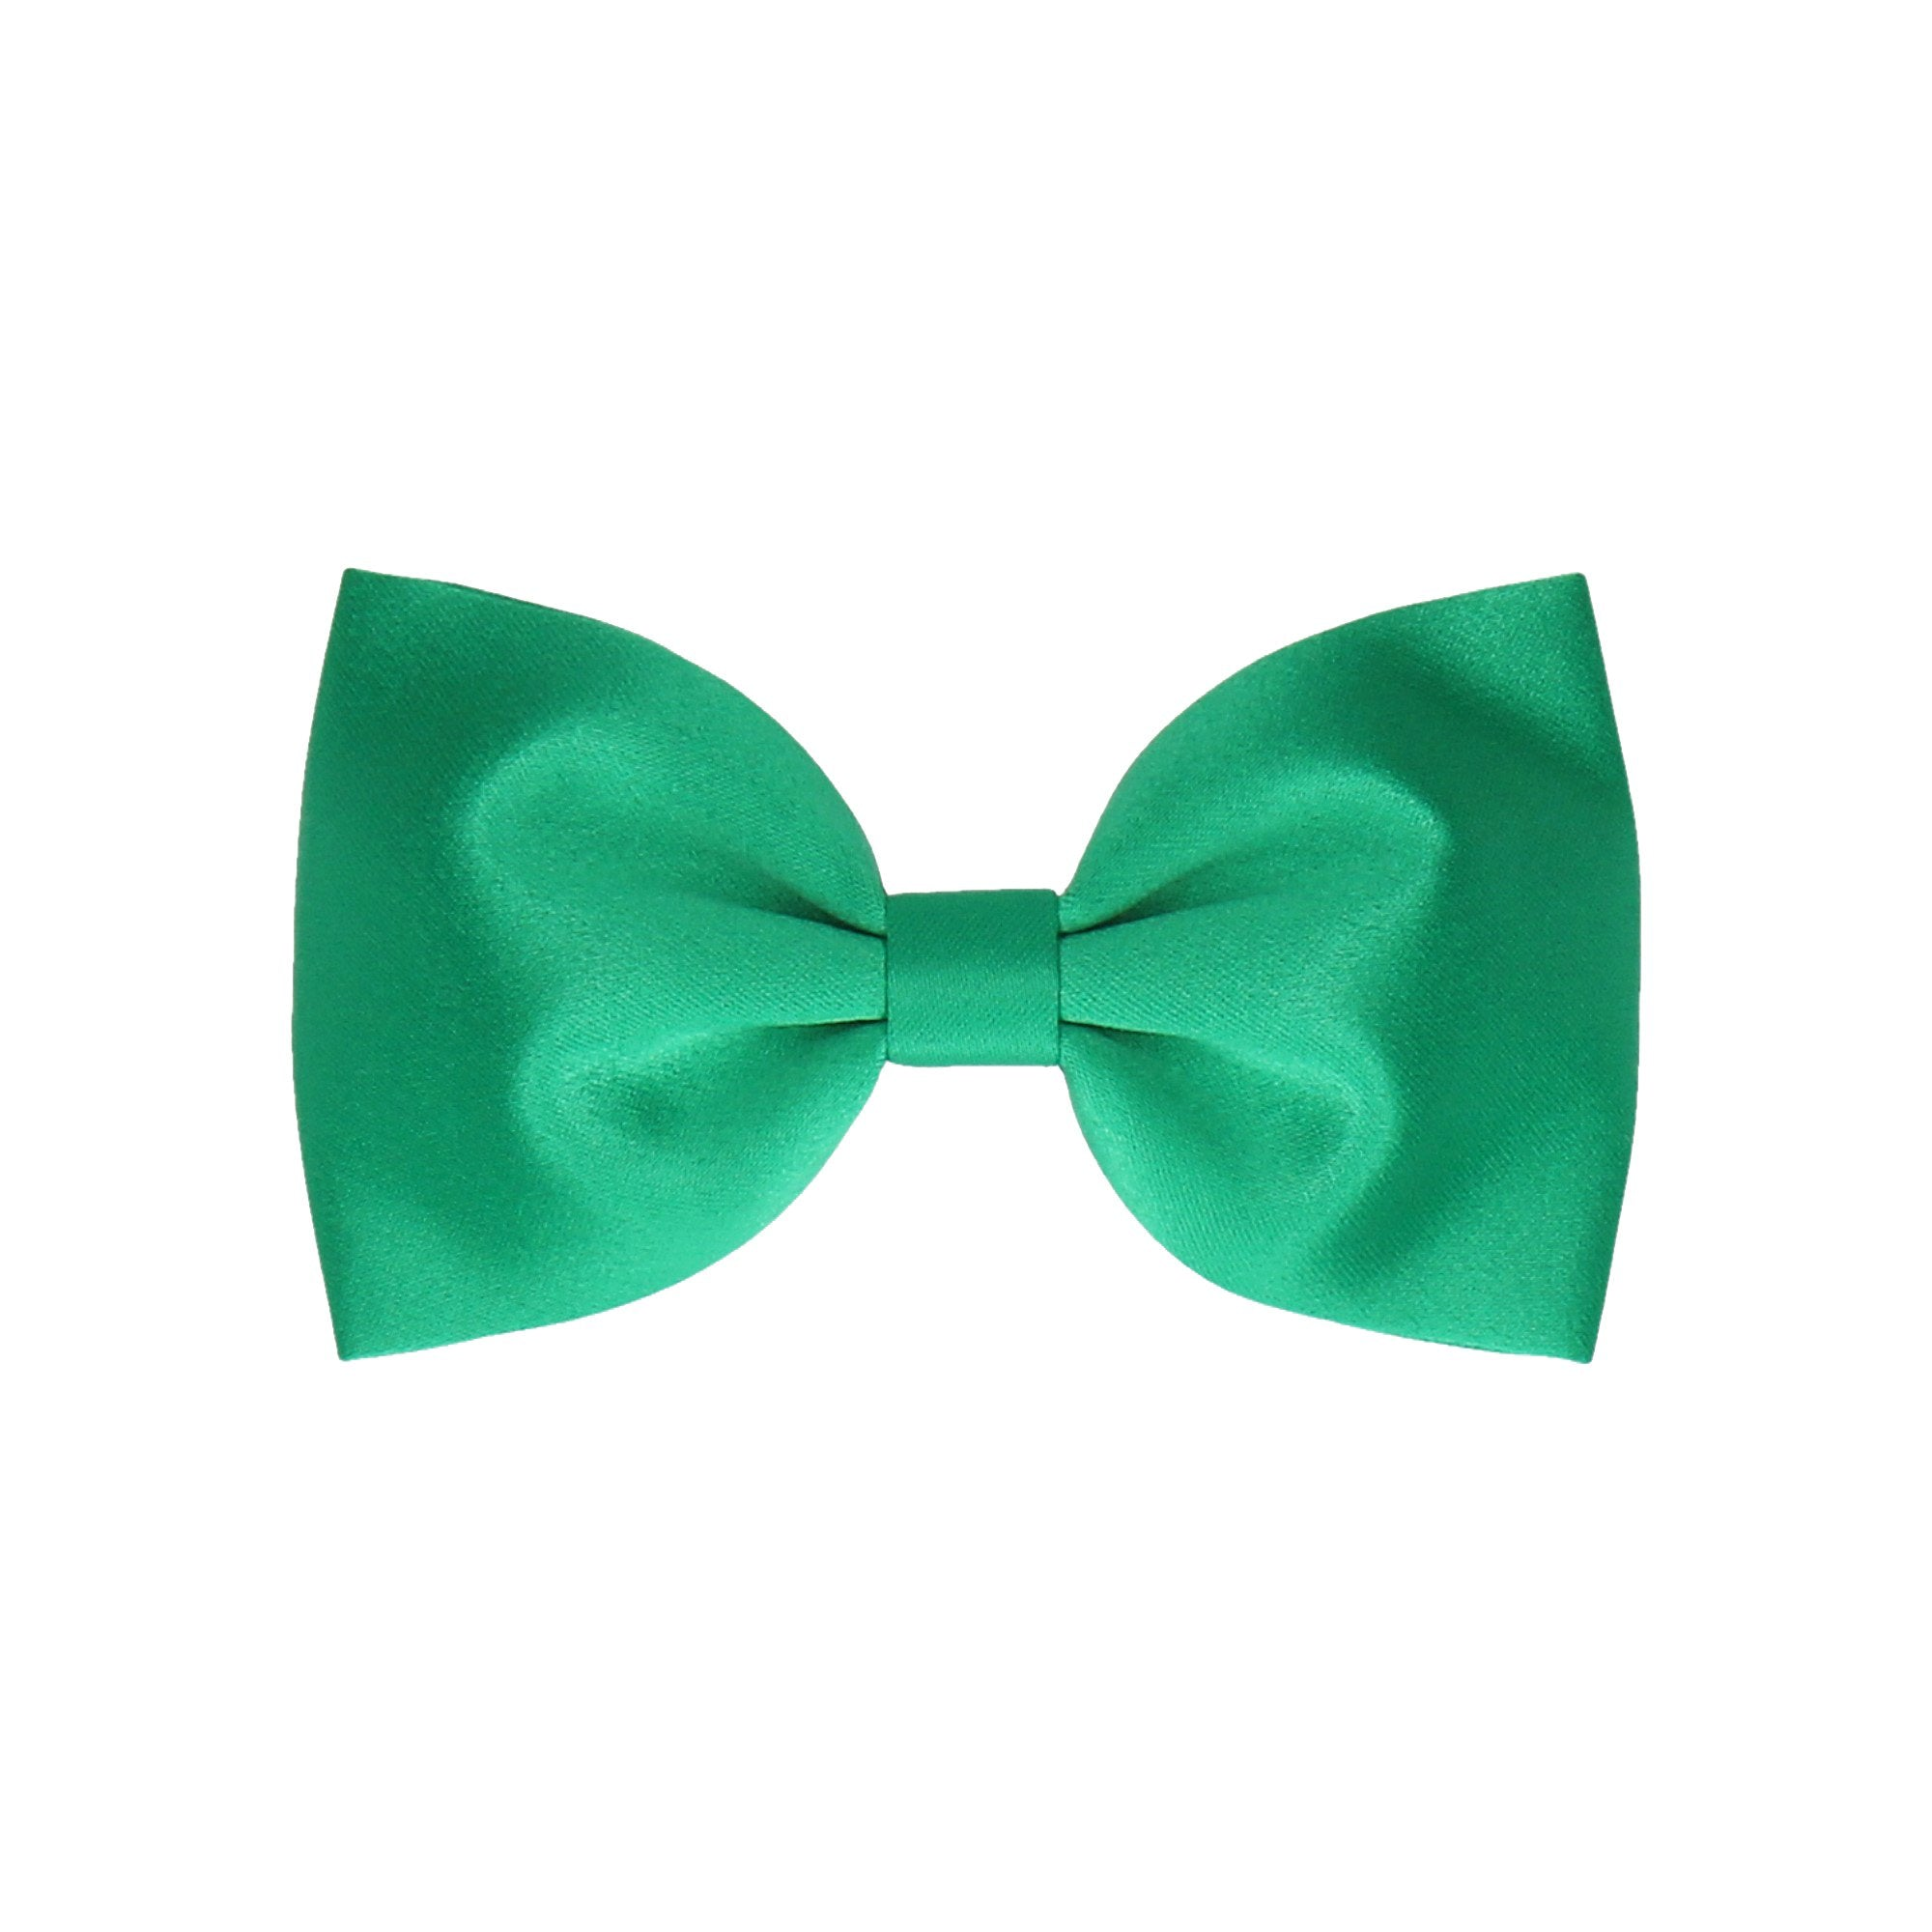 Satin in Emerald Green (Child's Bow Tie)